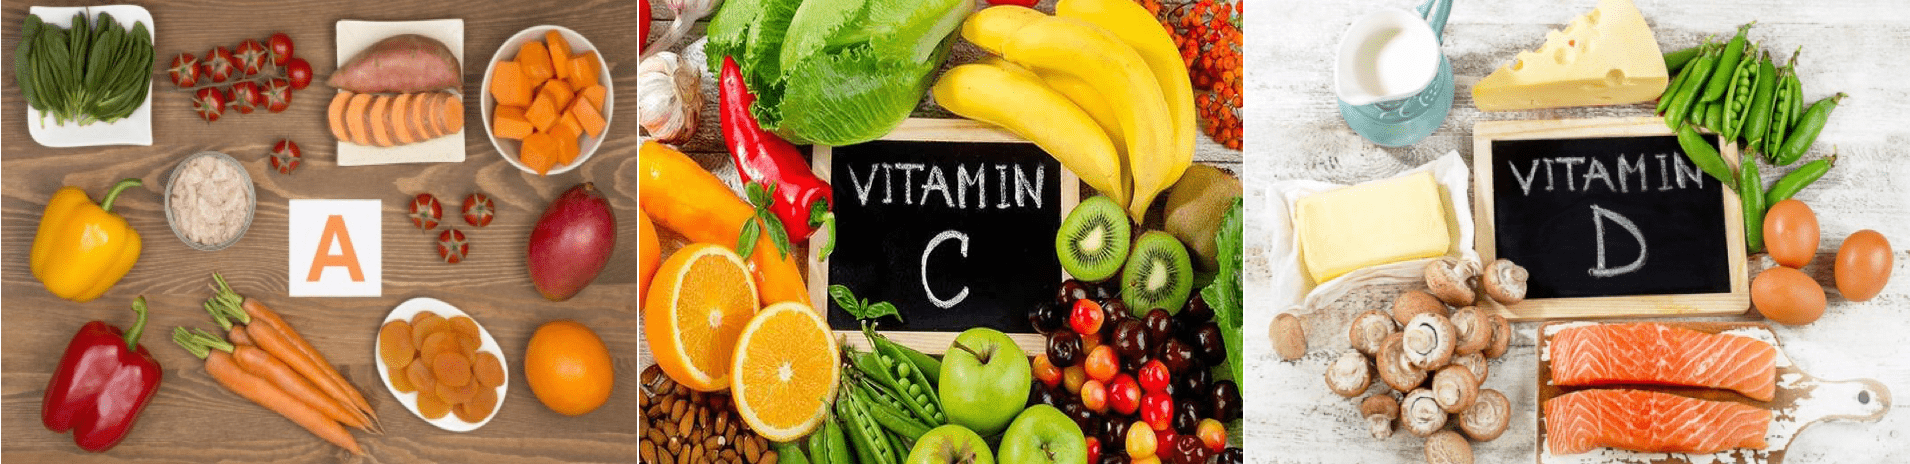 Vitamin A, C & D to fight Influenza